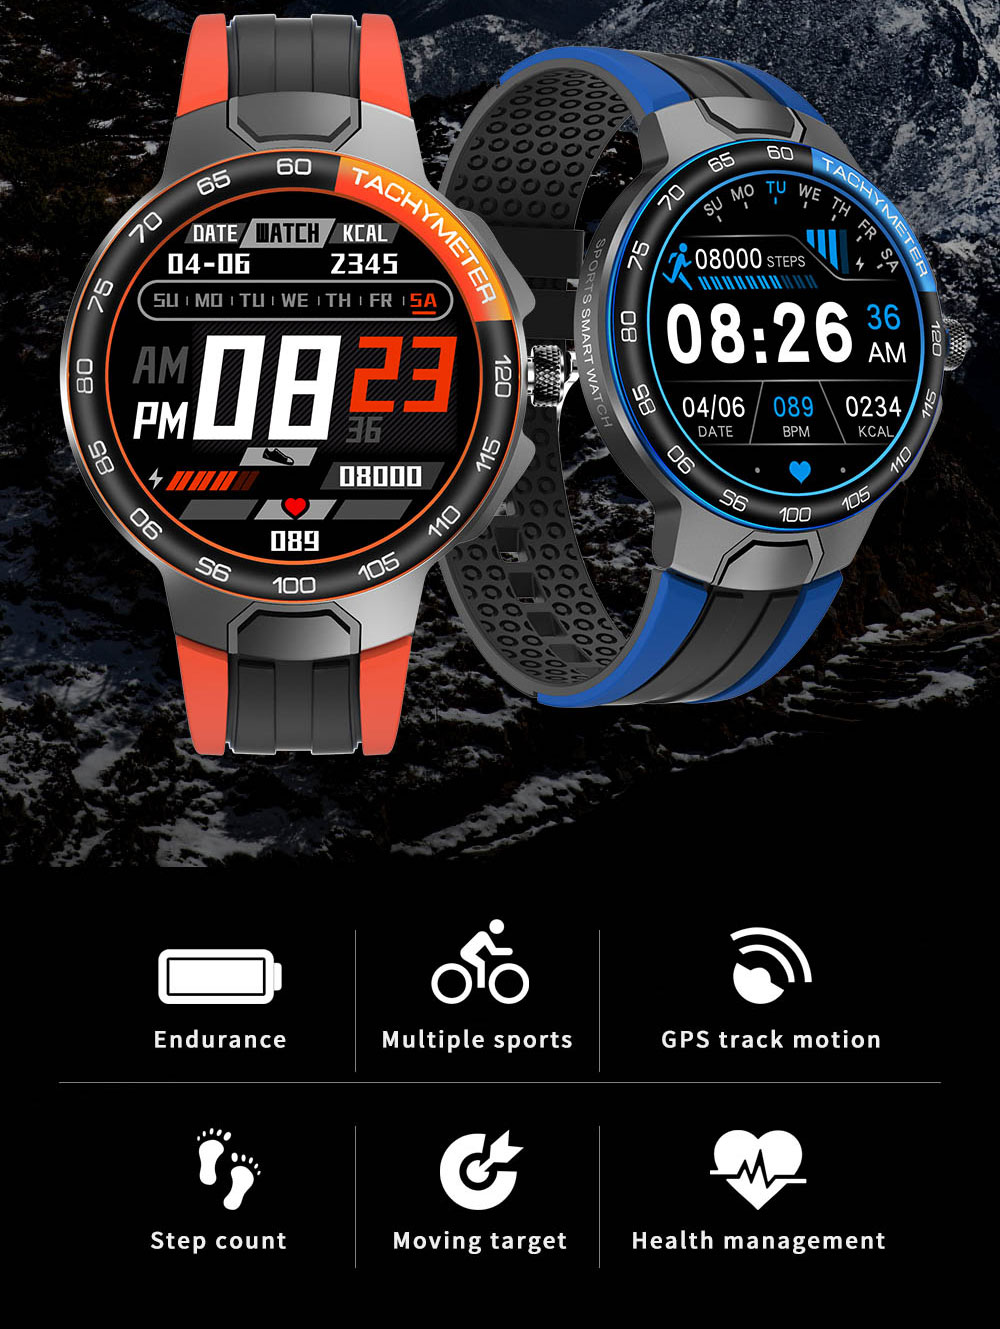 Hd2d49bf78e4c4a2ea73018702d7bc2f4O Smart Watch Men Women IP68 Waterproof Bluetooth 5.0 24 Exercise Modes Smartwatch E1-5 Heart Rate Monitoring for Android Iosr A